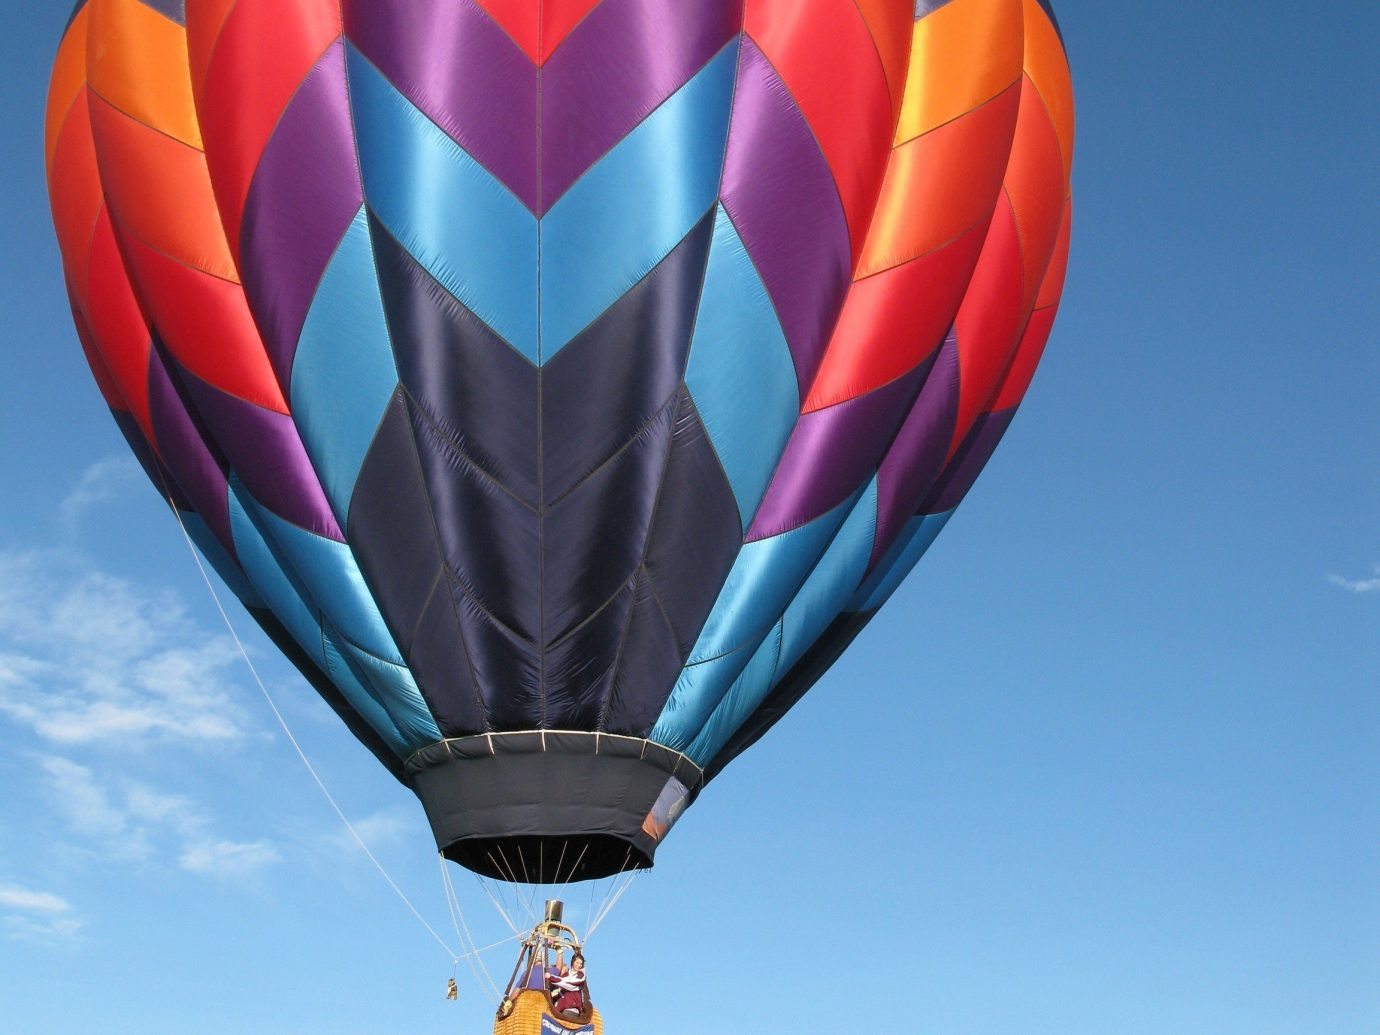 Trip Ideas balloon aircraft transport sky hot air ballooning Hot Air Balloon outdoor vehicle person toy atmosphere of earth colorful people crowd colored